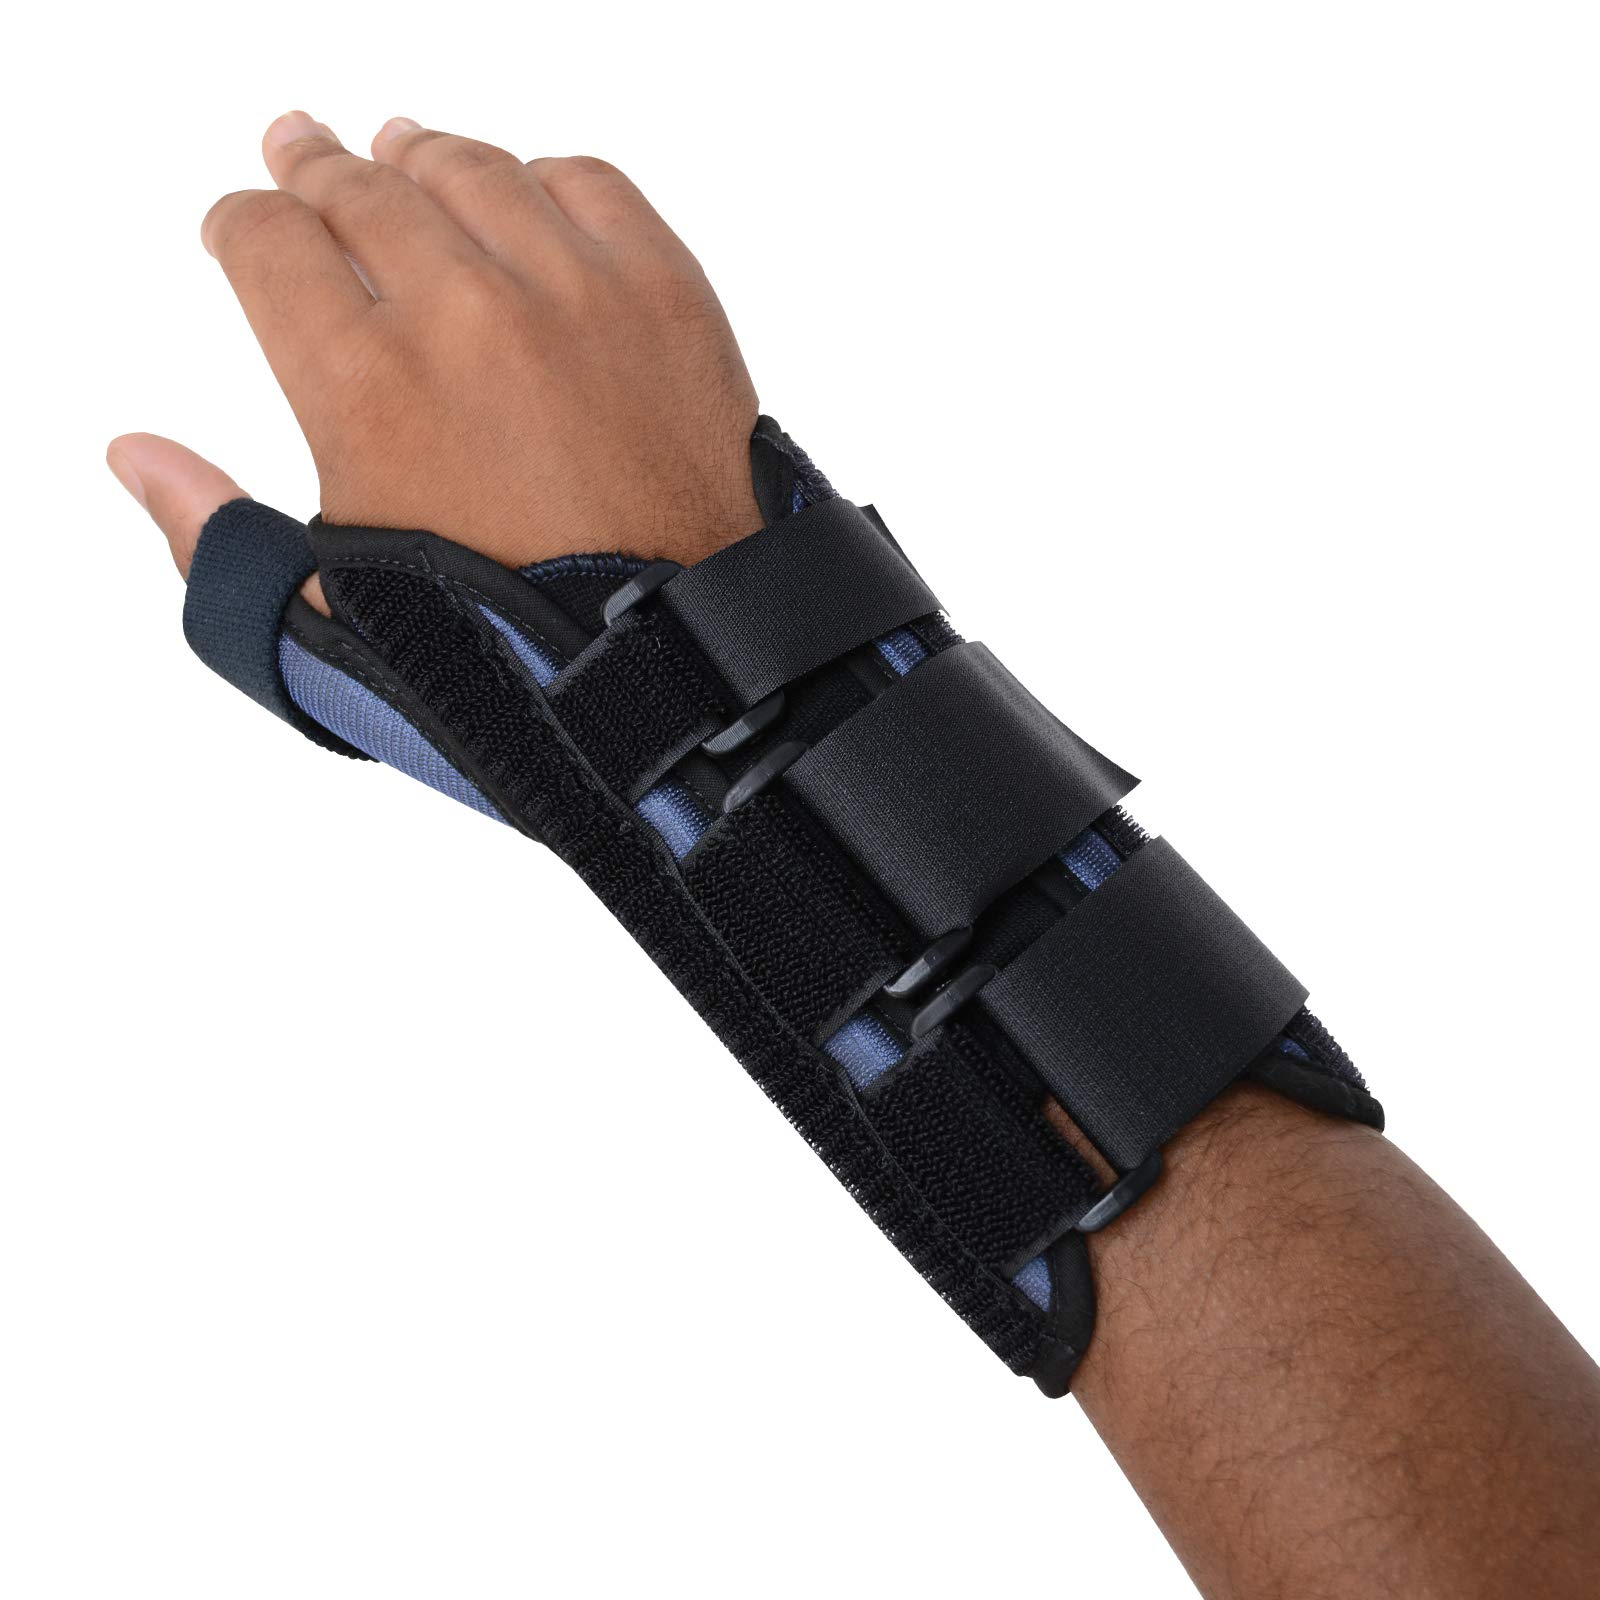 Sammons Preston Thumb Spica Wrist Brace, MC and CMC Joint Support and Stabilizer, Secure Brace and Splint for Thumb with Open Finger, Splint for Recovery, Therapy, Rehabilitation, Right, Medium by Sammons Preston (Image #4)